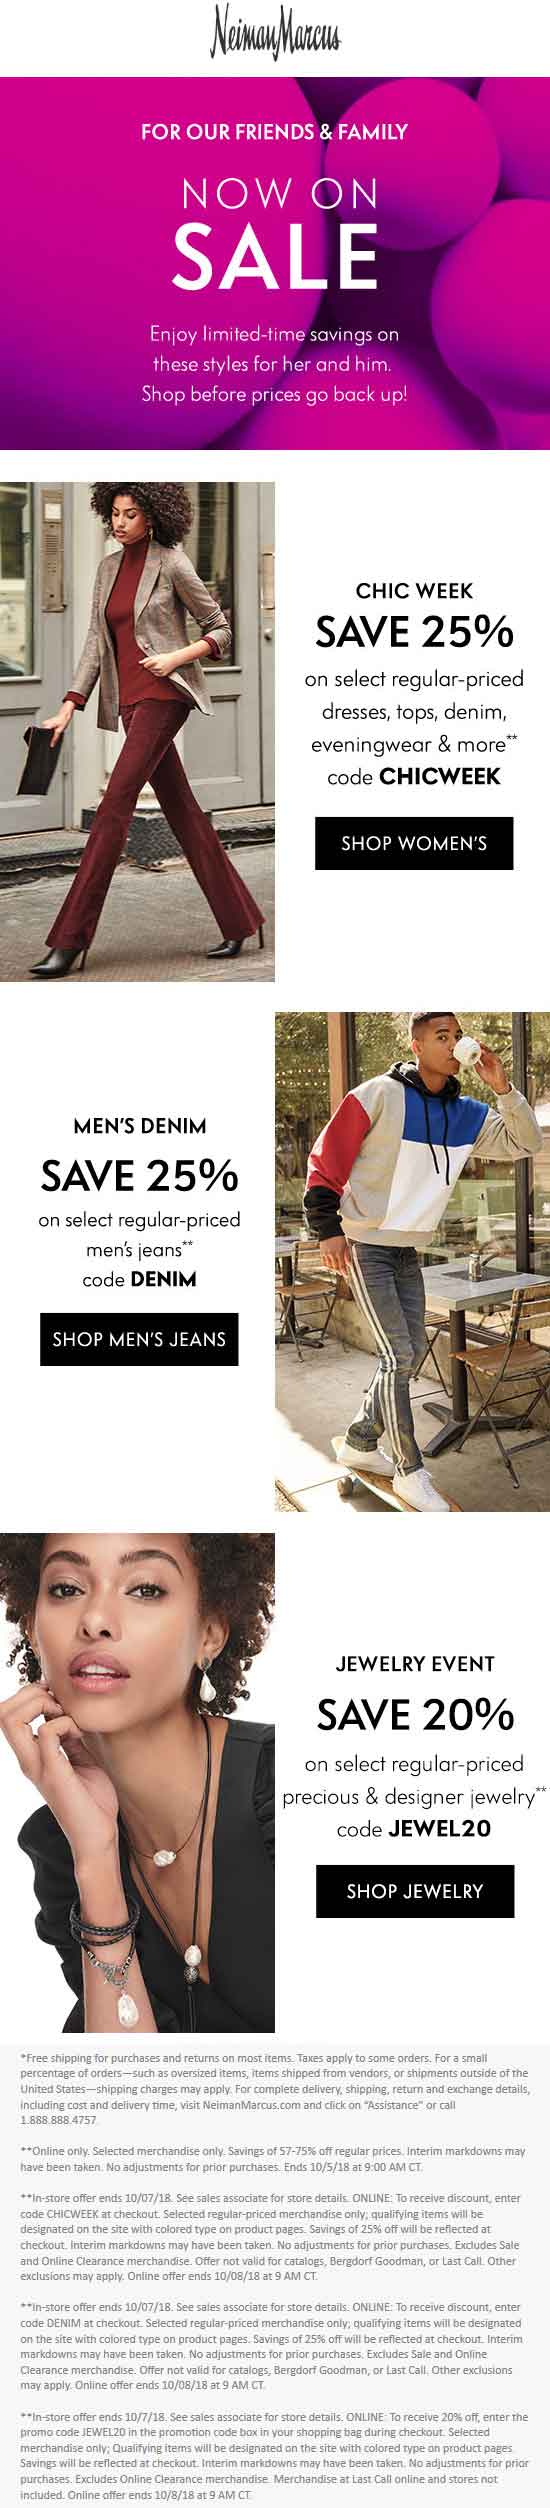 Neiman Marcus Coupon May 2019 20-25% off at Neiman Marcus, or online via promo code CHICWEEK